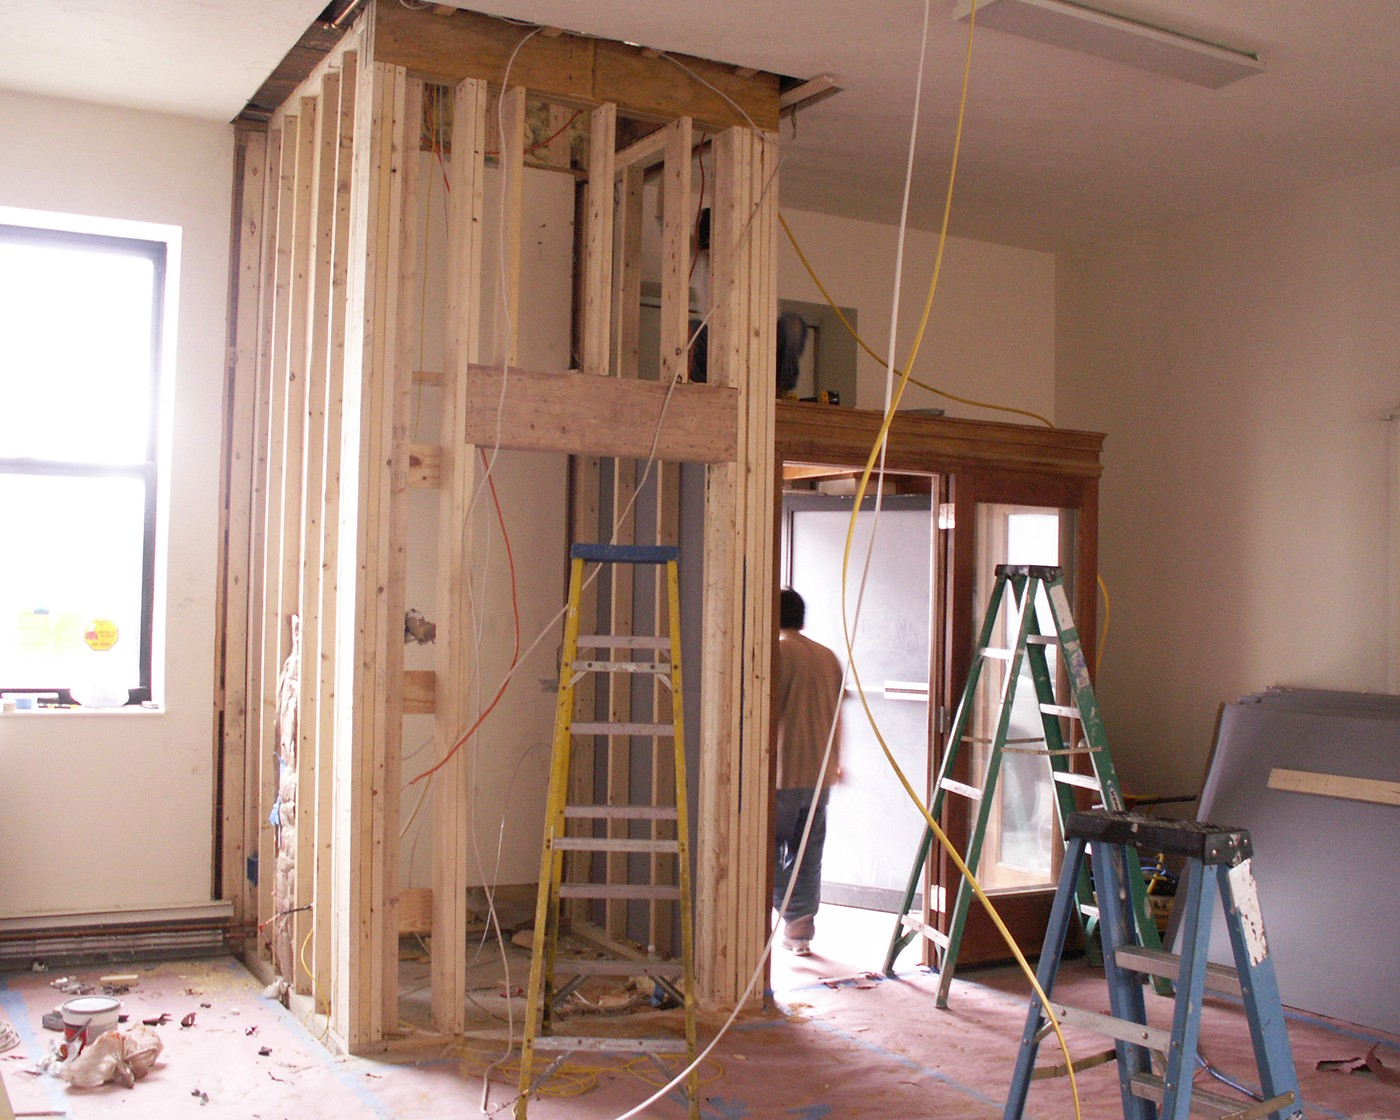 Installing An Elevator Or Wheelchair Lift In Your Home?